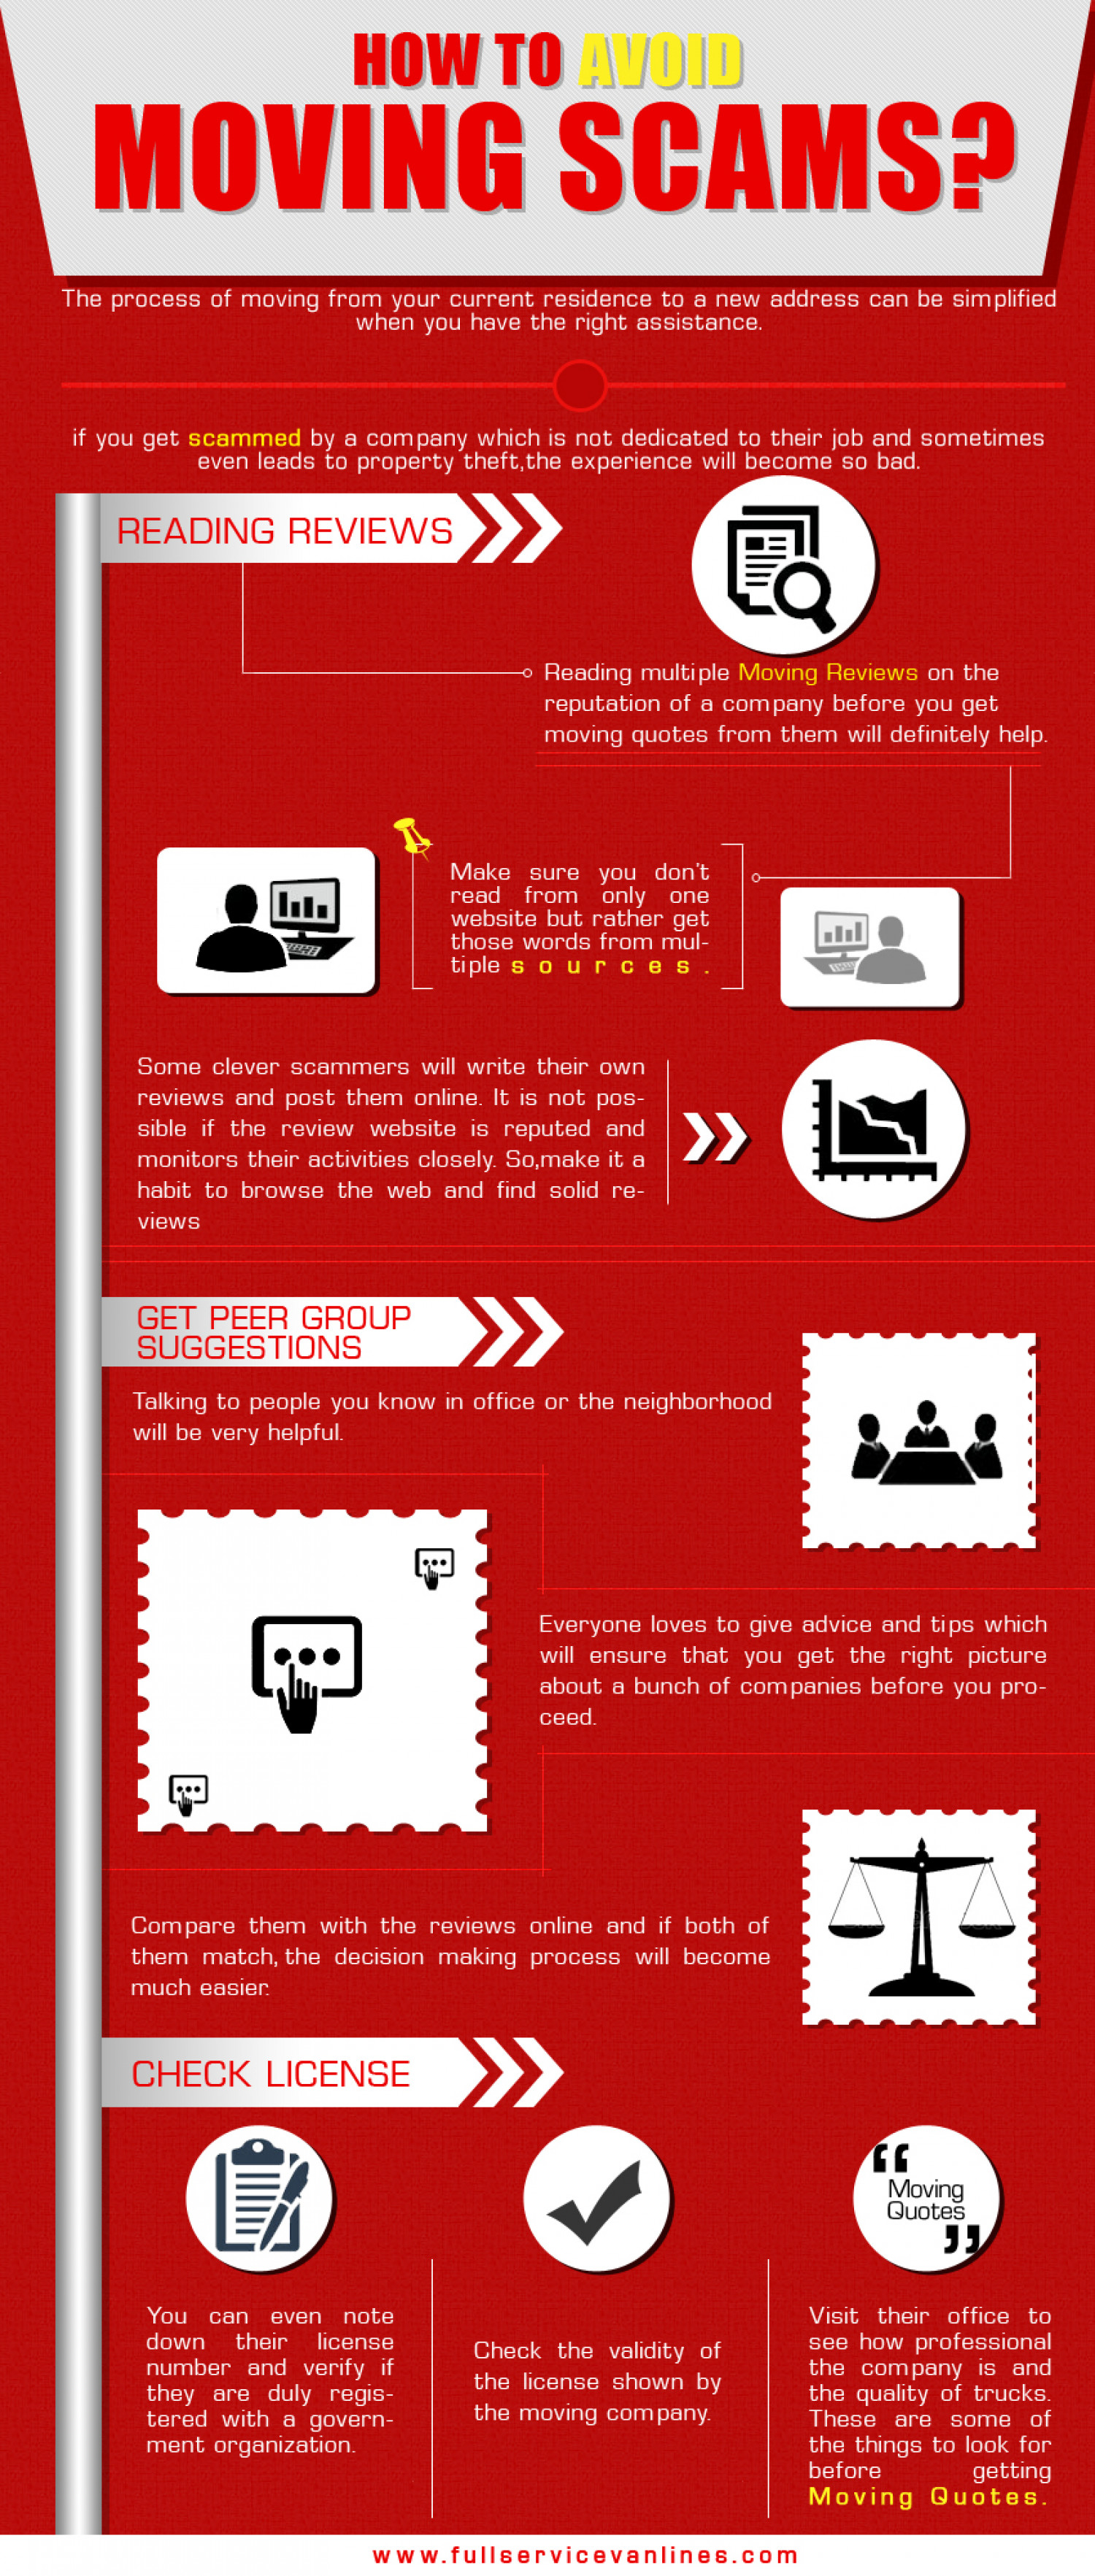 How to Avoid Moving Scams? Infographic